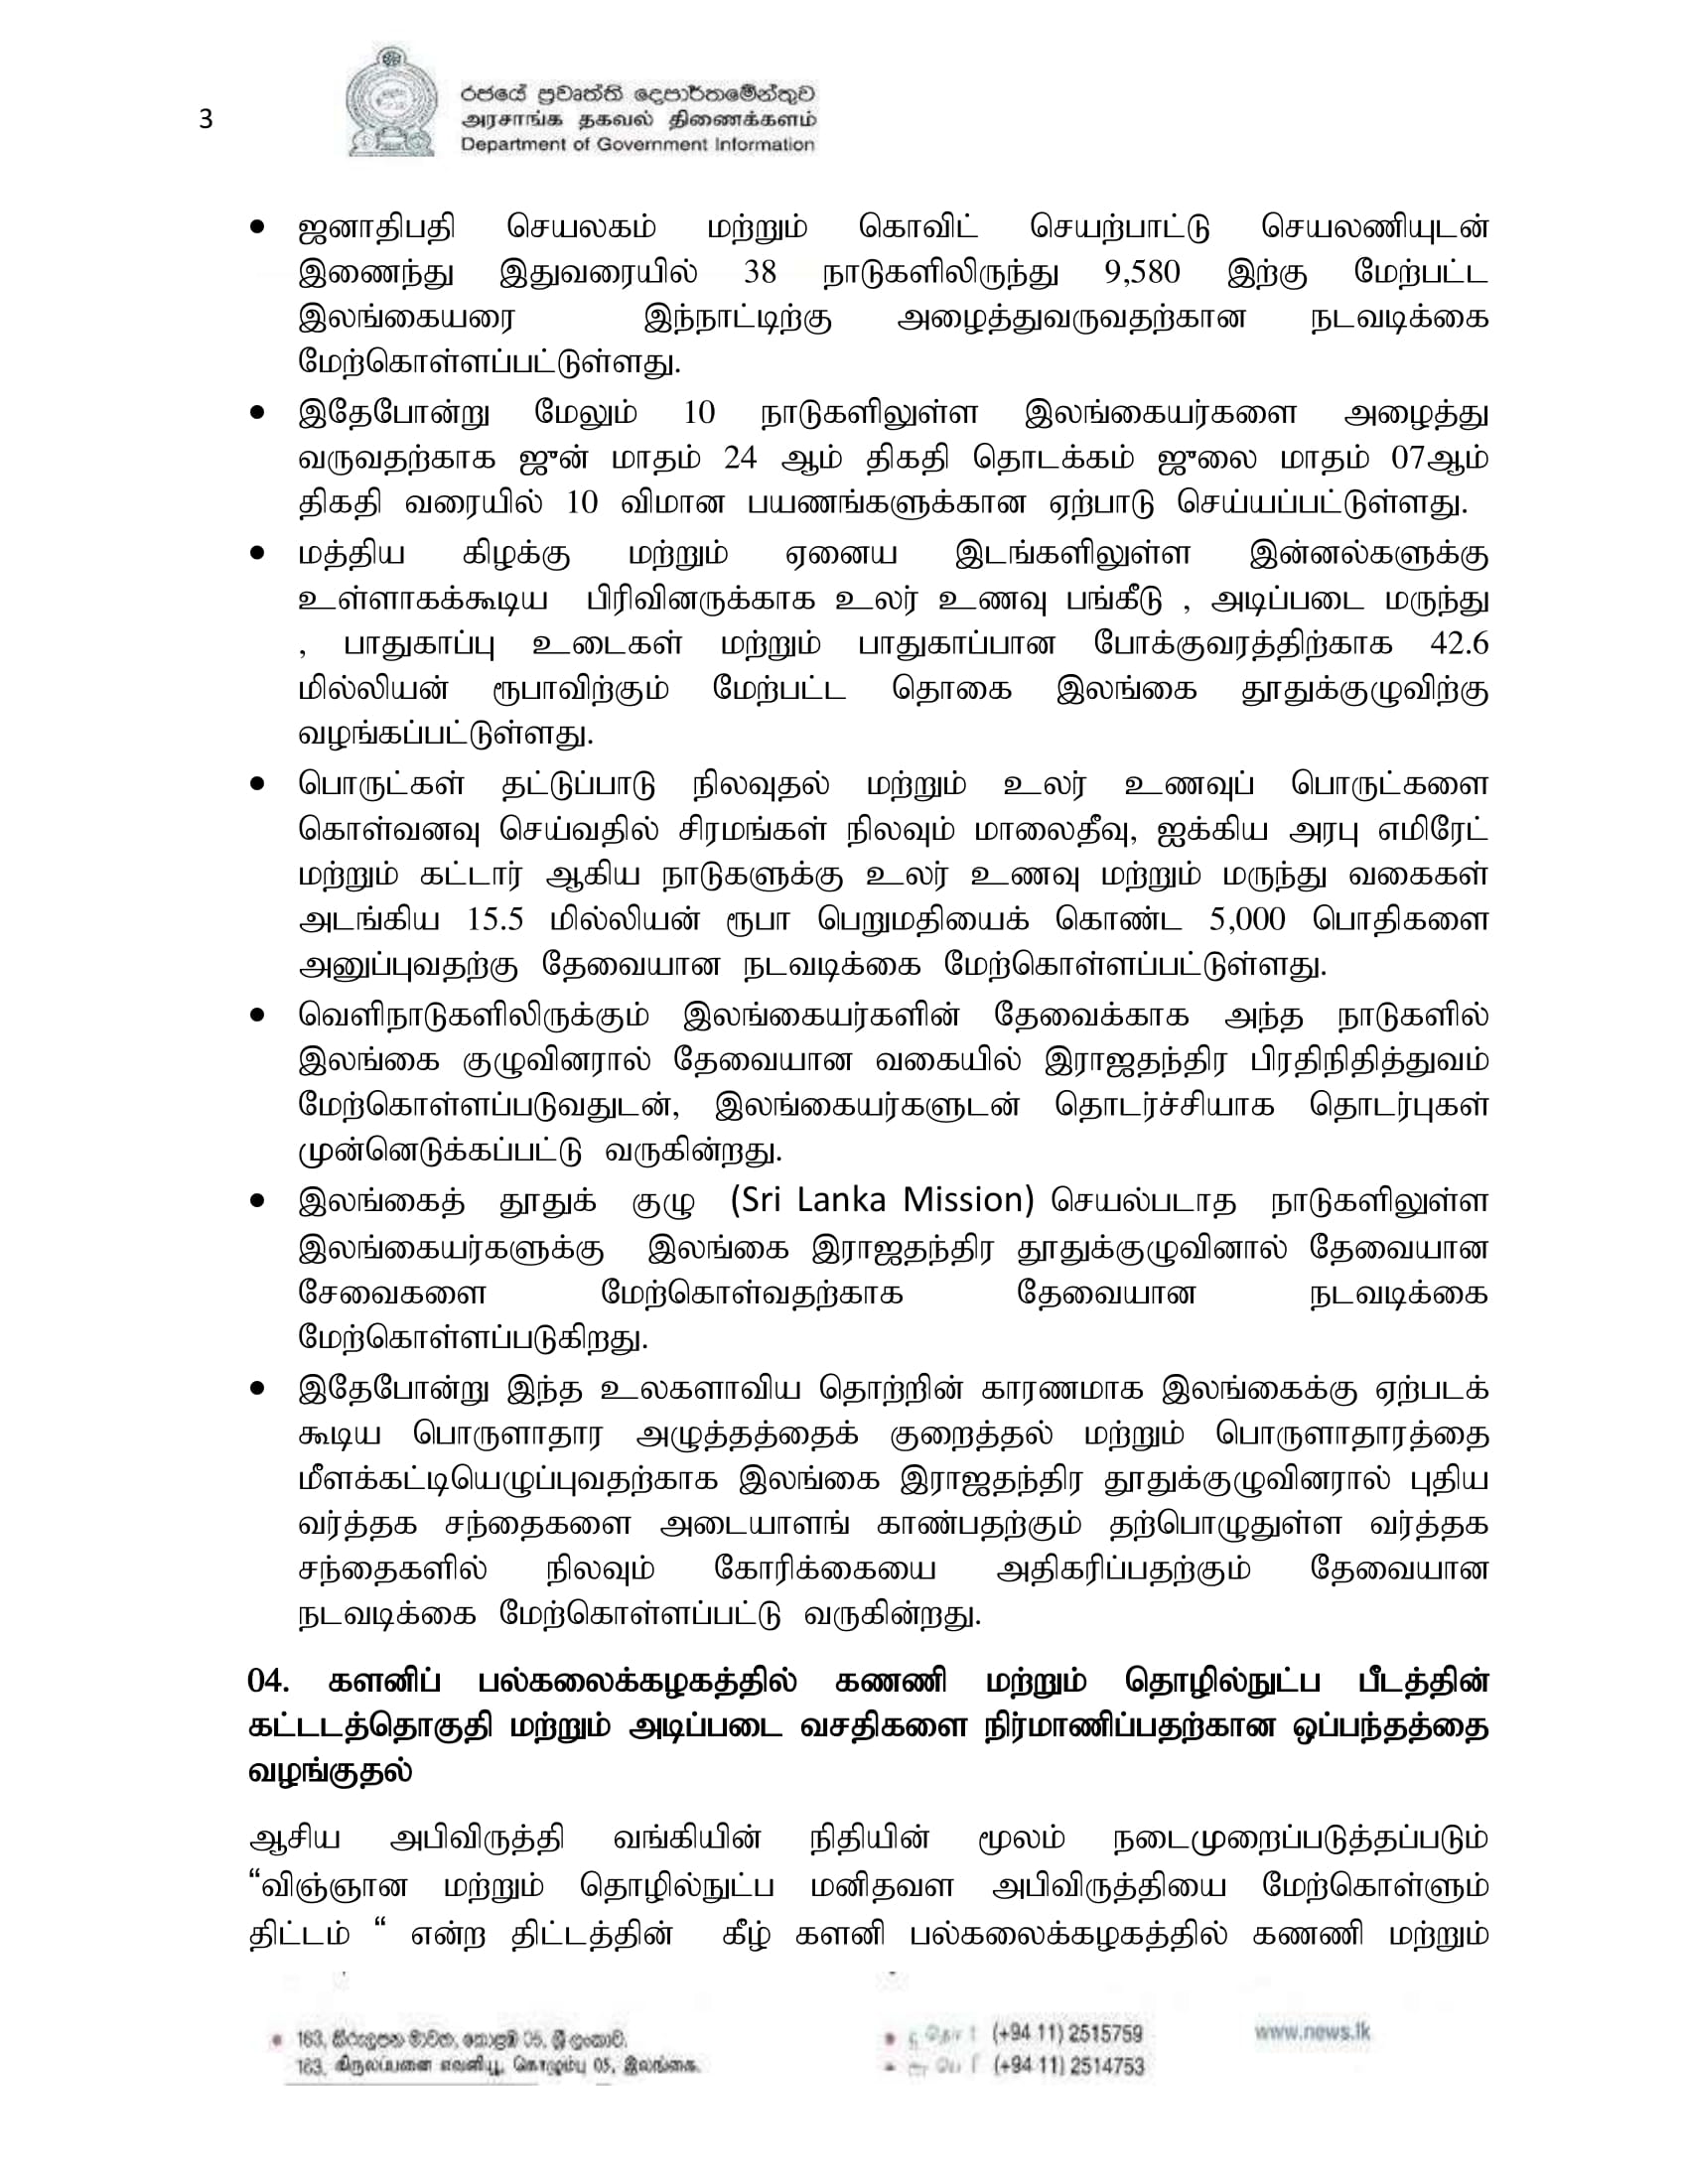 2020.06.24 Cabinet Tamil 1 1 3